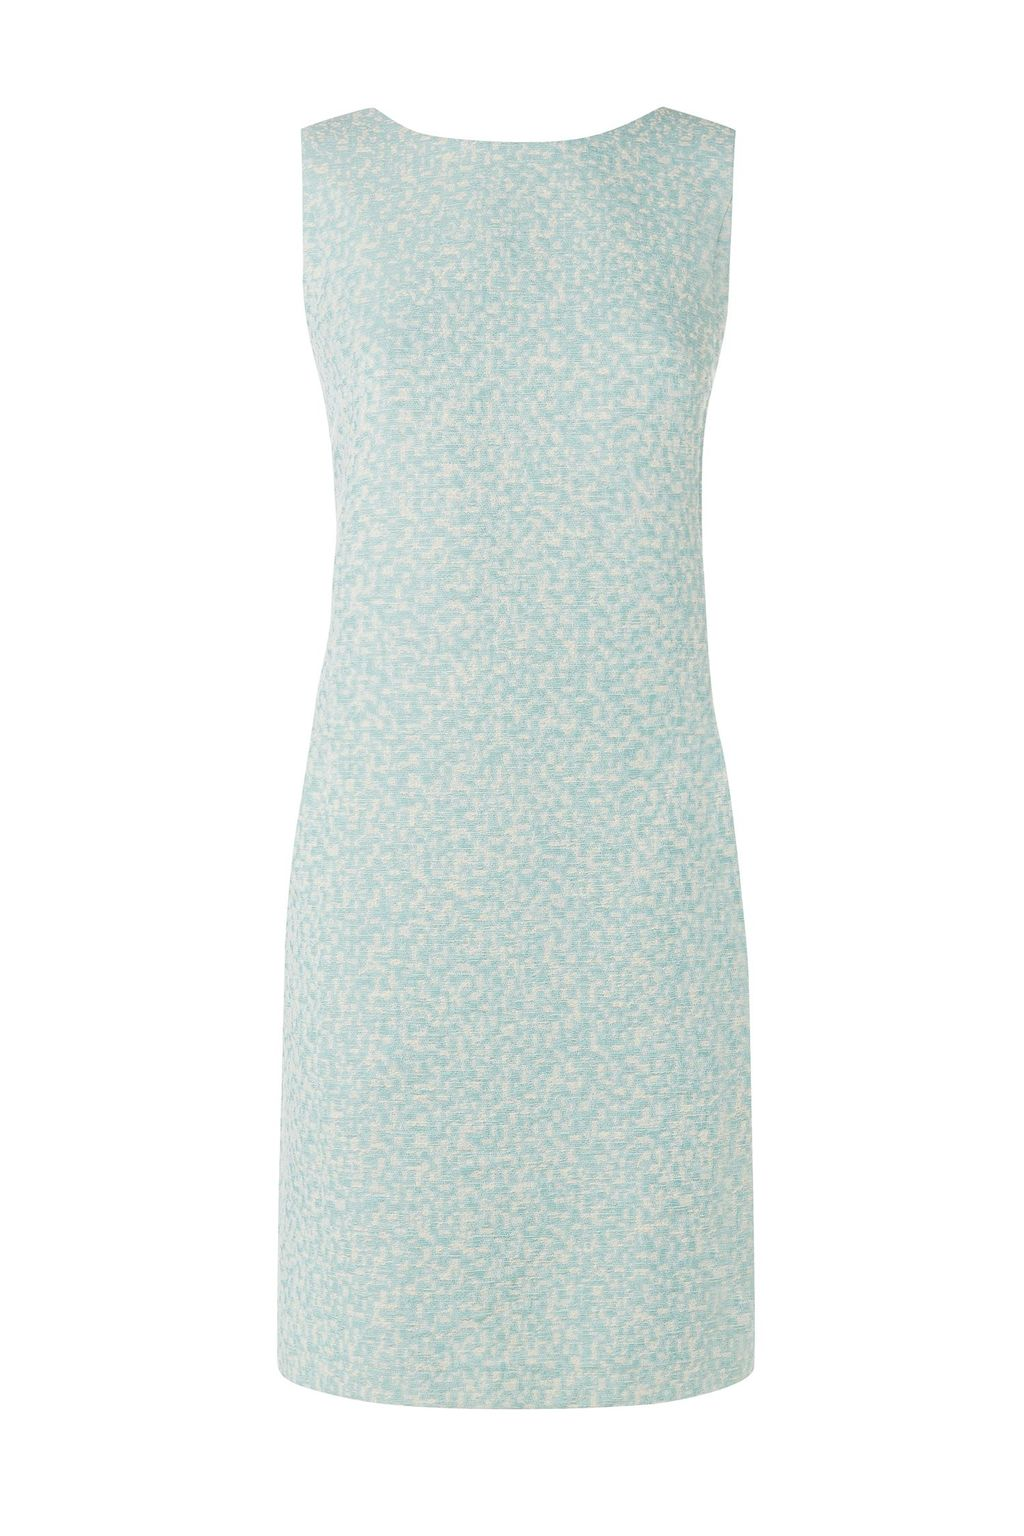 Lupine Dress, Blue - style: shift; fit: tailored/fitted; pattern: plain; sleeve style: sleeveless; predominant colour: pistachio; occasions: evening, occasion; length: just above the knee; neckline: crew; sleeve length: sleeveless; pattern type: fabric; texture group: woven light midweight; season: s/s 2015